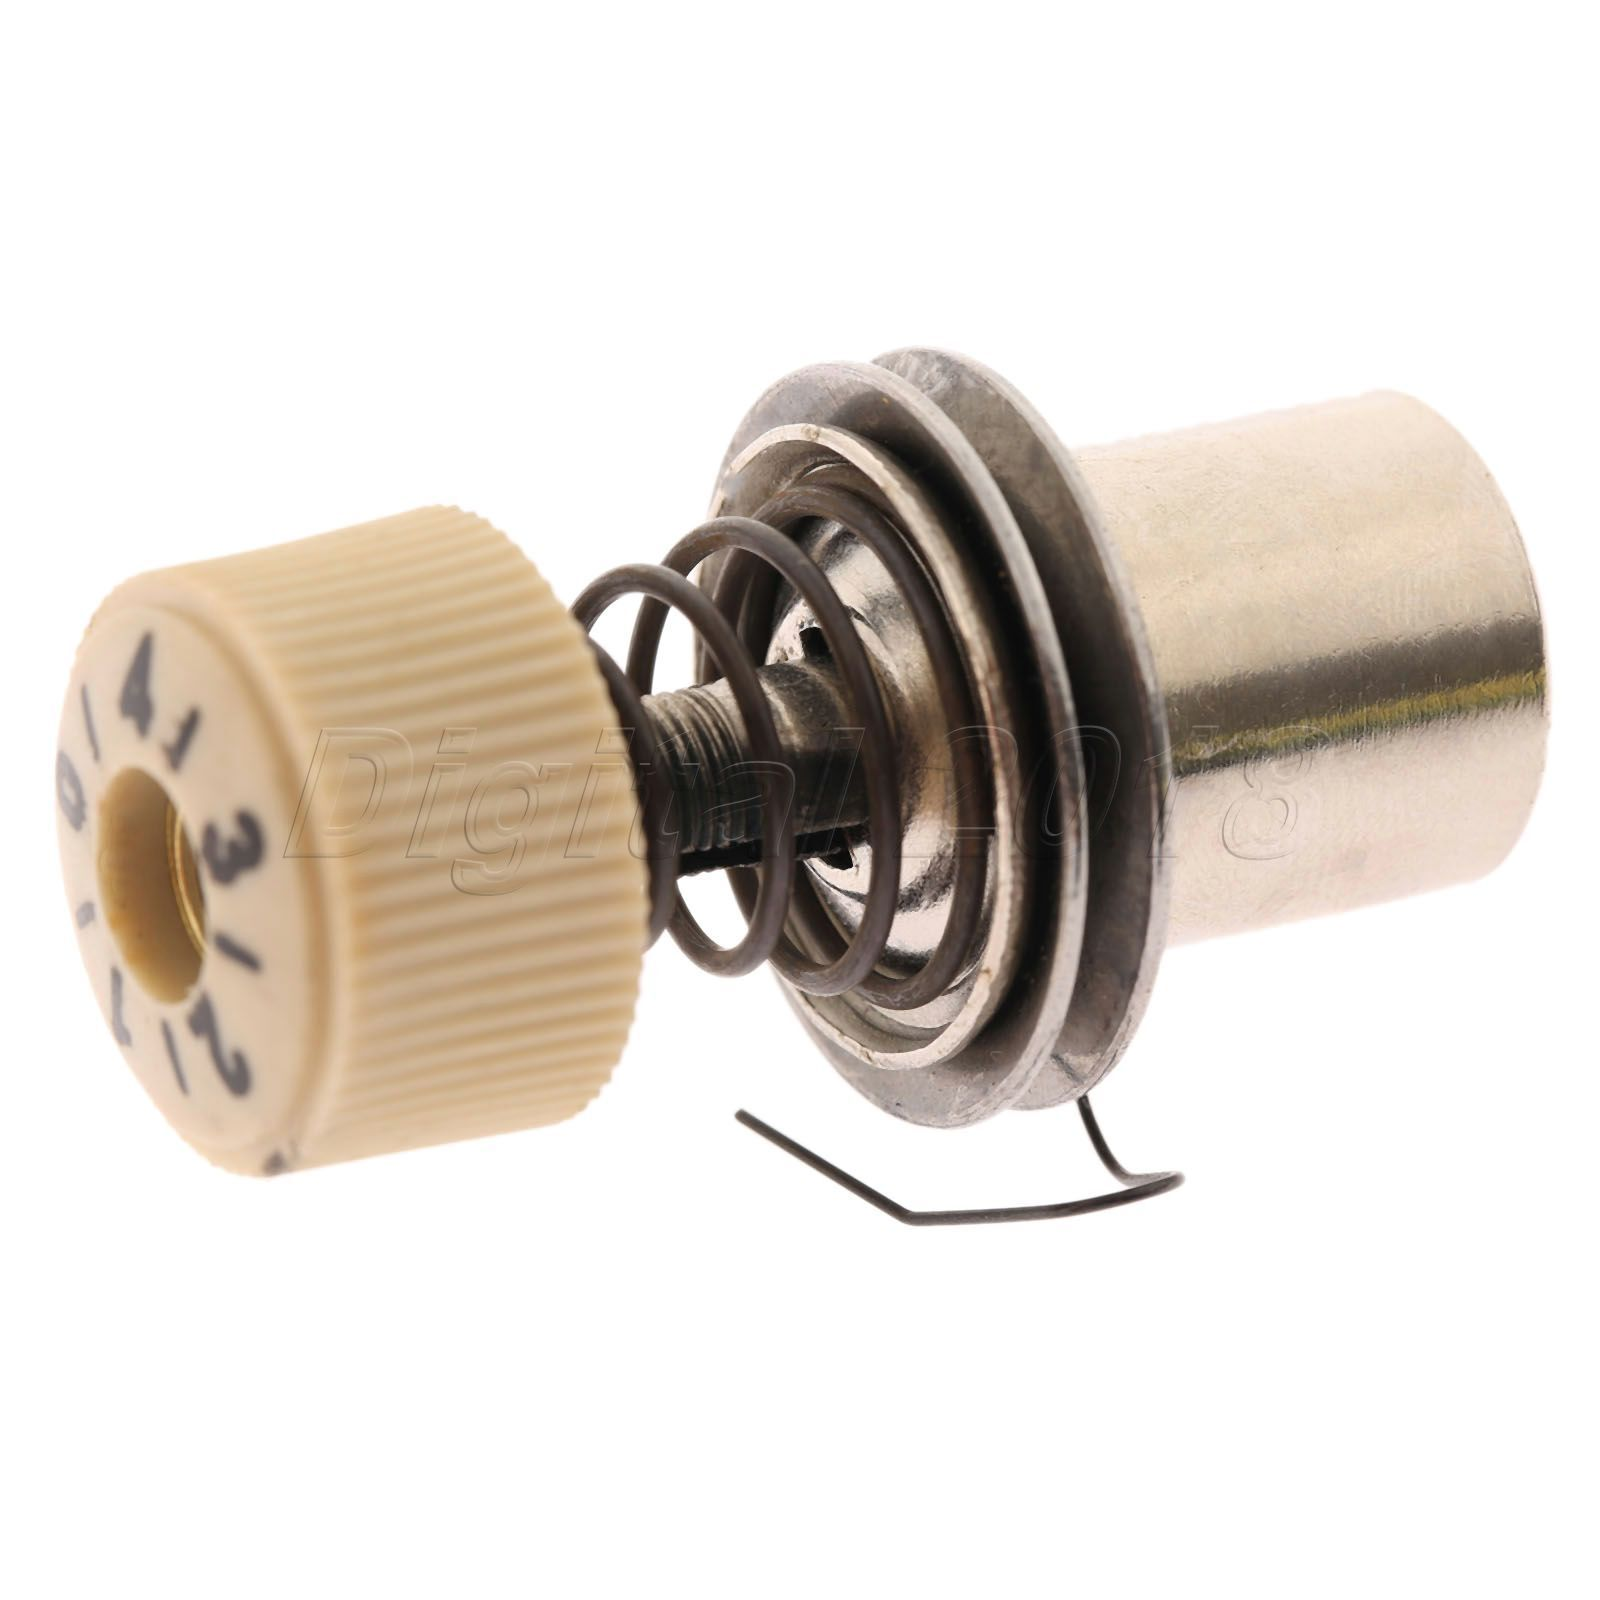 1Pc Gripper Thread Tension 9000 For Juki ZOJE Industrial Sewing Machine Parts